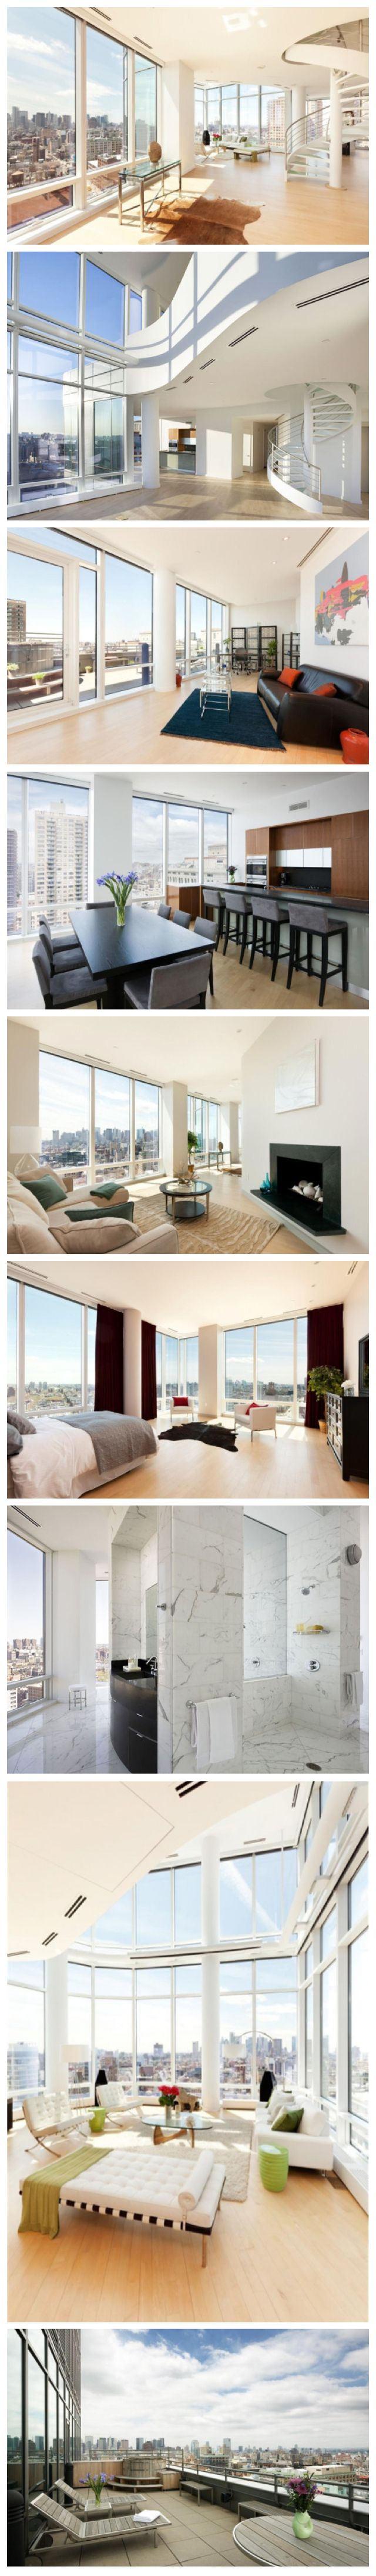 82 best Penthouse | Luxury | Living images on Pinterest ...